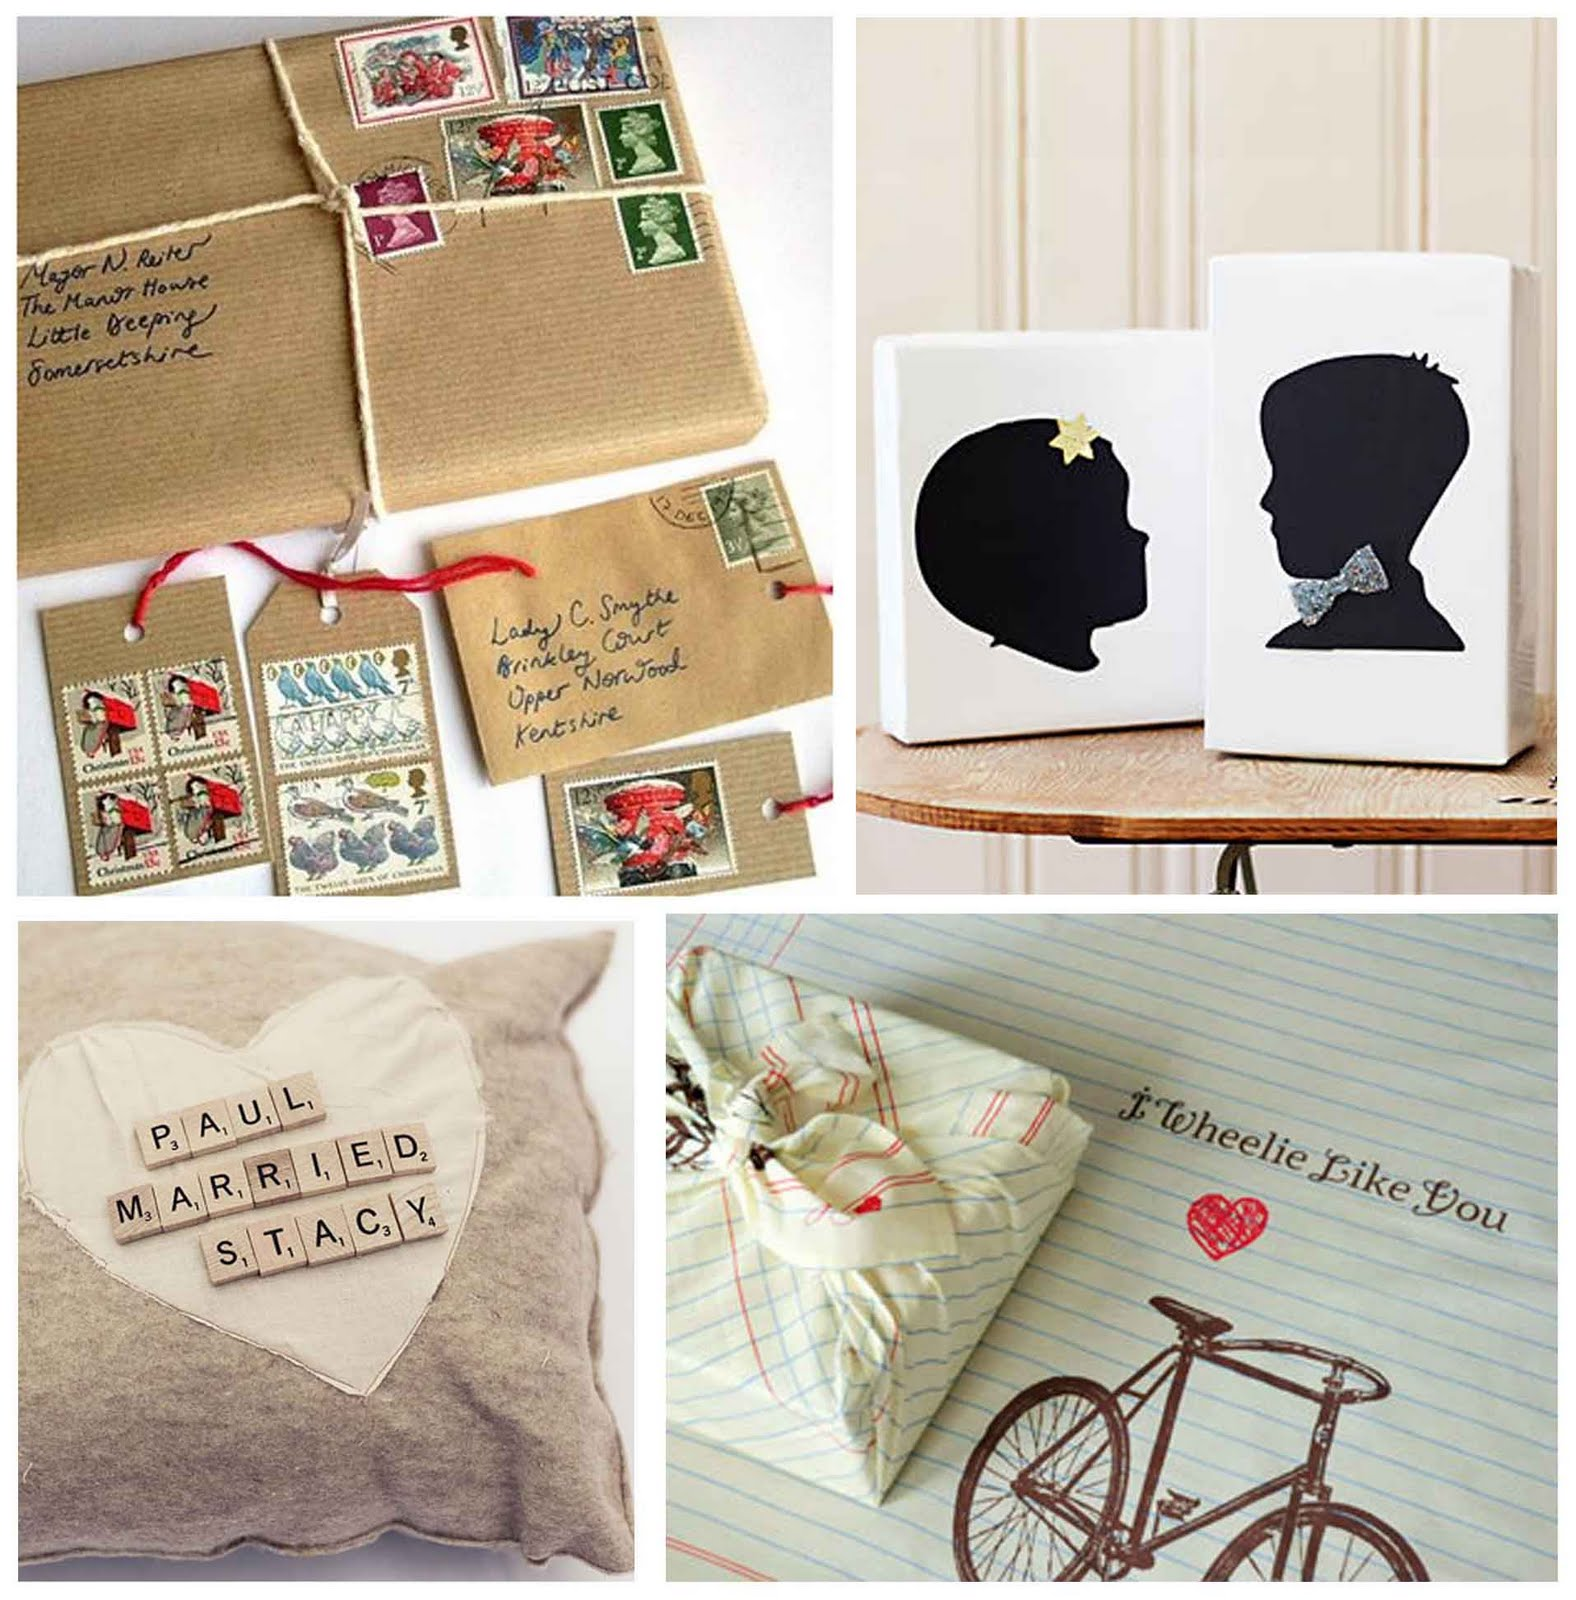 weddings gifts wedding gifts anniversary gifts weddings gifts